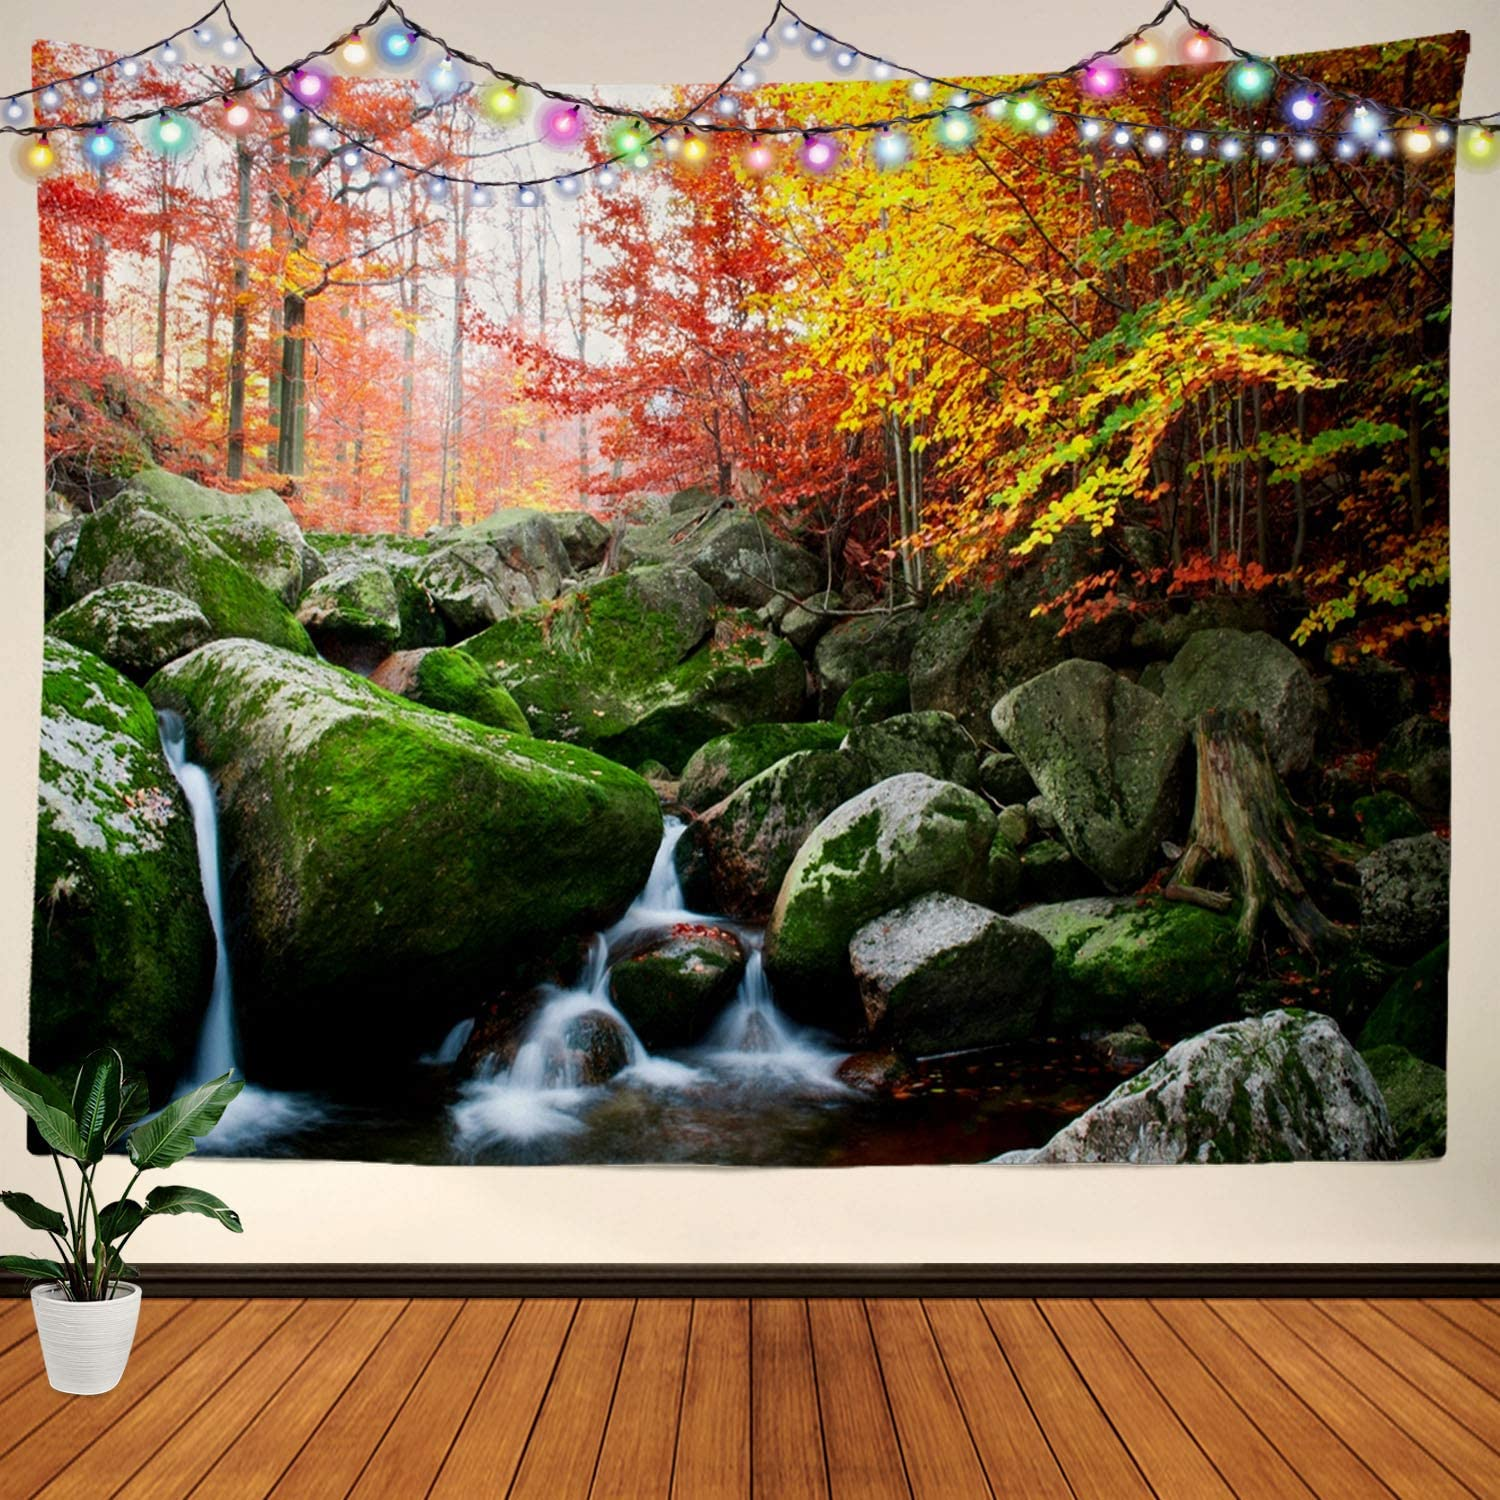 BaoNews Autumn Zen Garden Tapestry, Beautiful Waterfall with Trees Red Leaves Rocks and Large Wall Hanging Tablecloths Tapestry Bedroom Living Room Dorm 59.1 x 82.7 inches(White Blue Green)